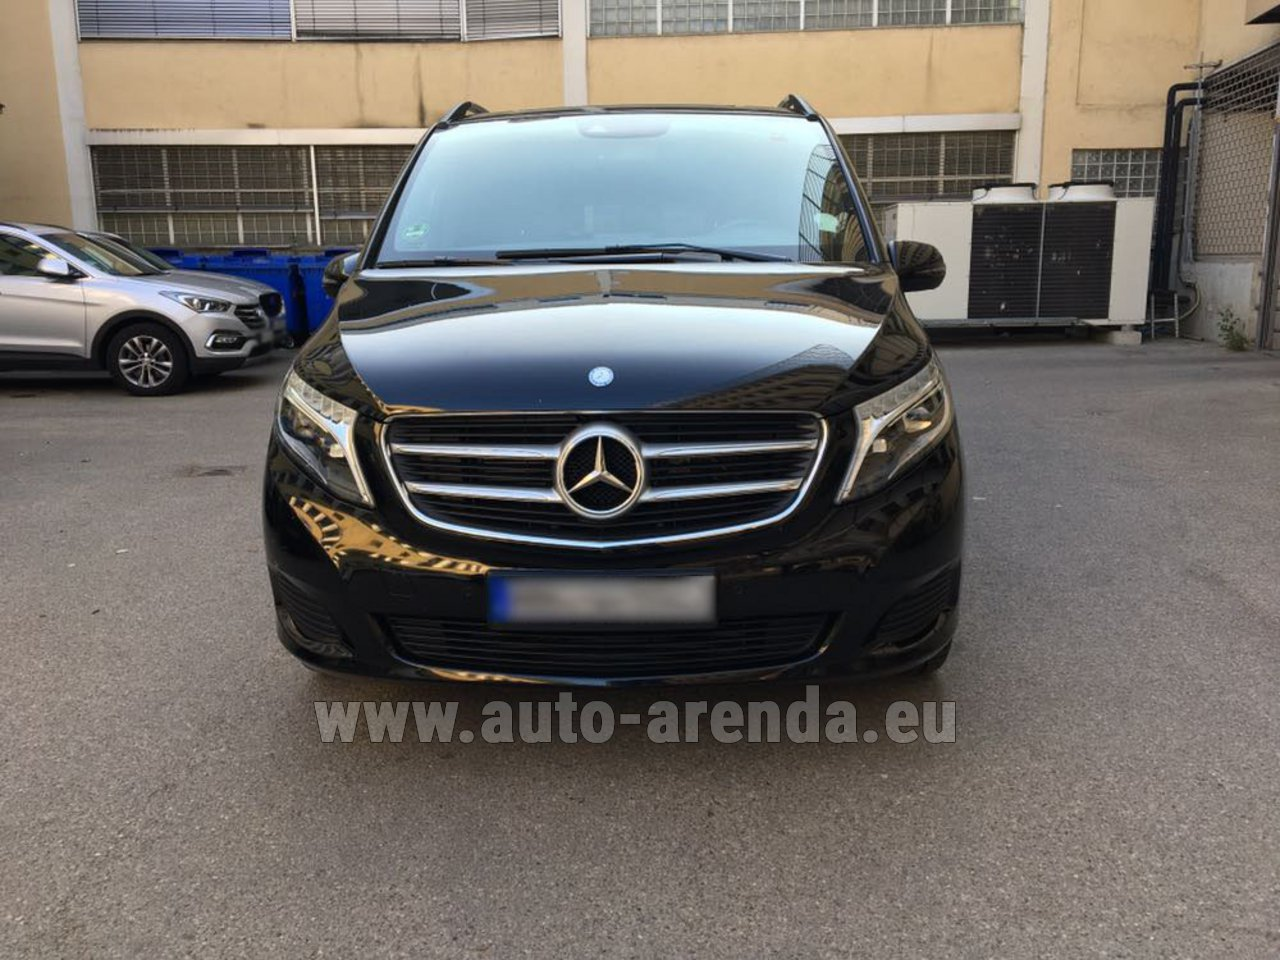 cannes airport ceq mercedes v class v 250 diesel long 8 seats rental auto arenda. Black Bedroom Furniture Sets. Home Design Ideas